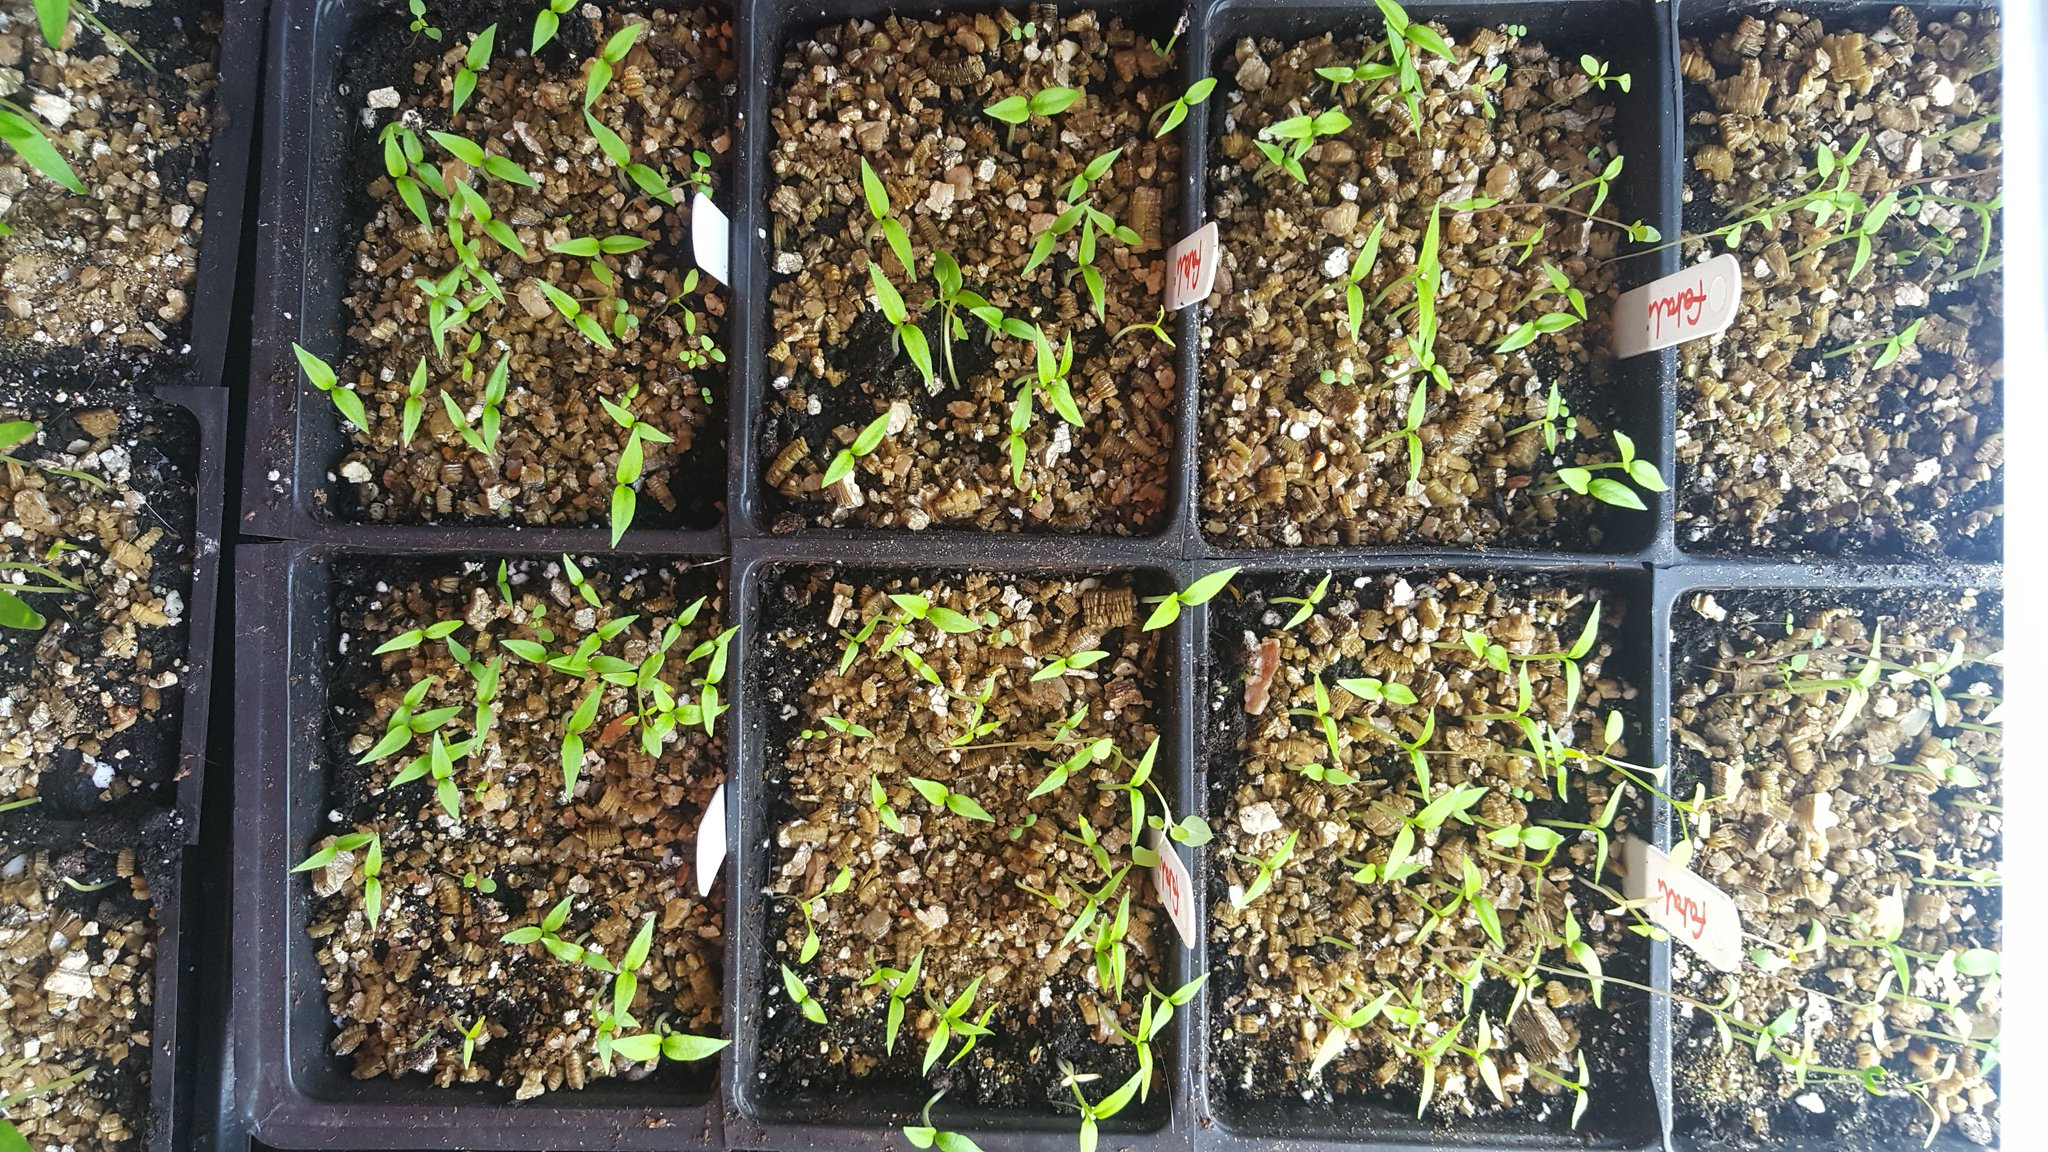 Habanero fatali seedlings